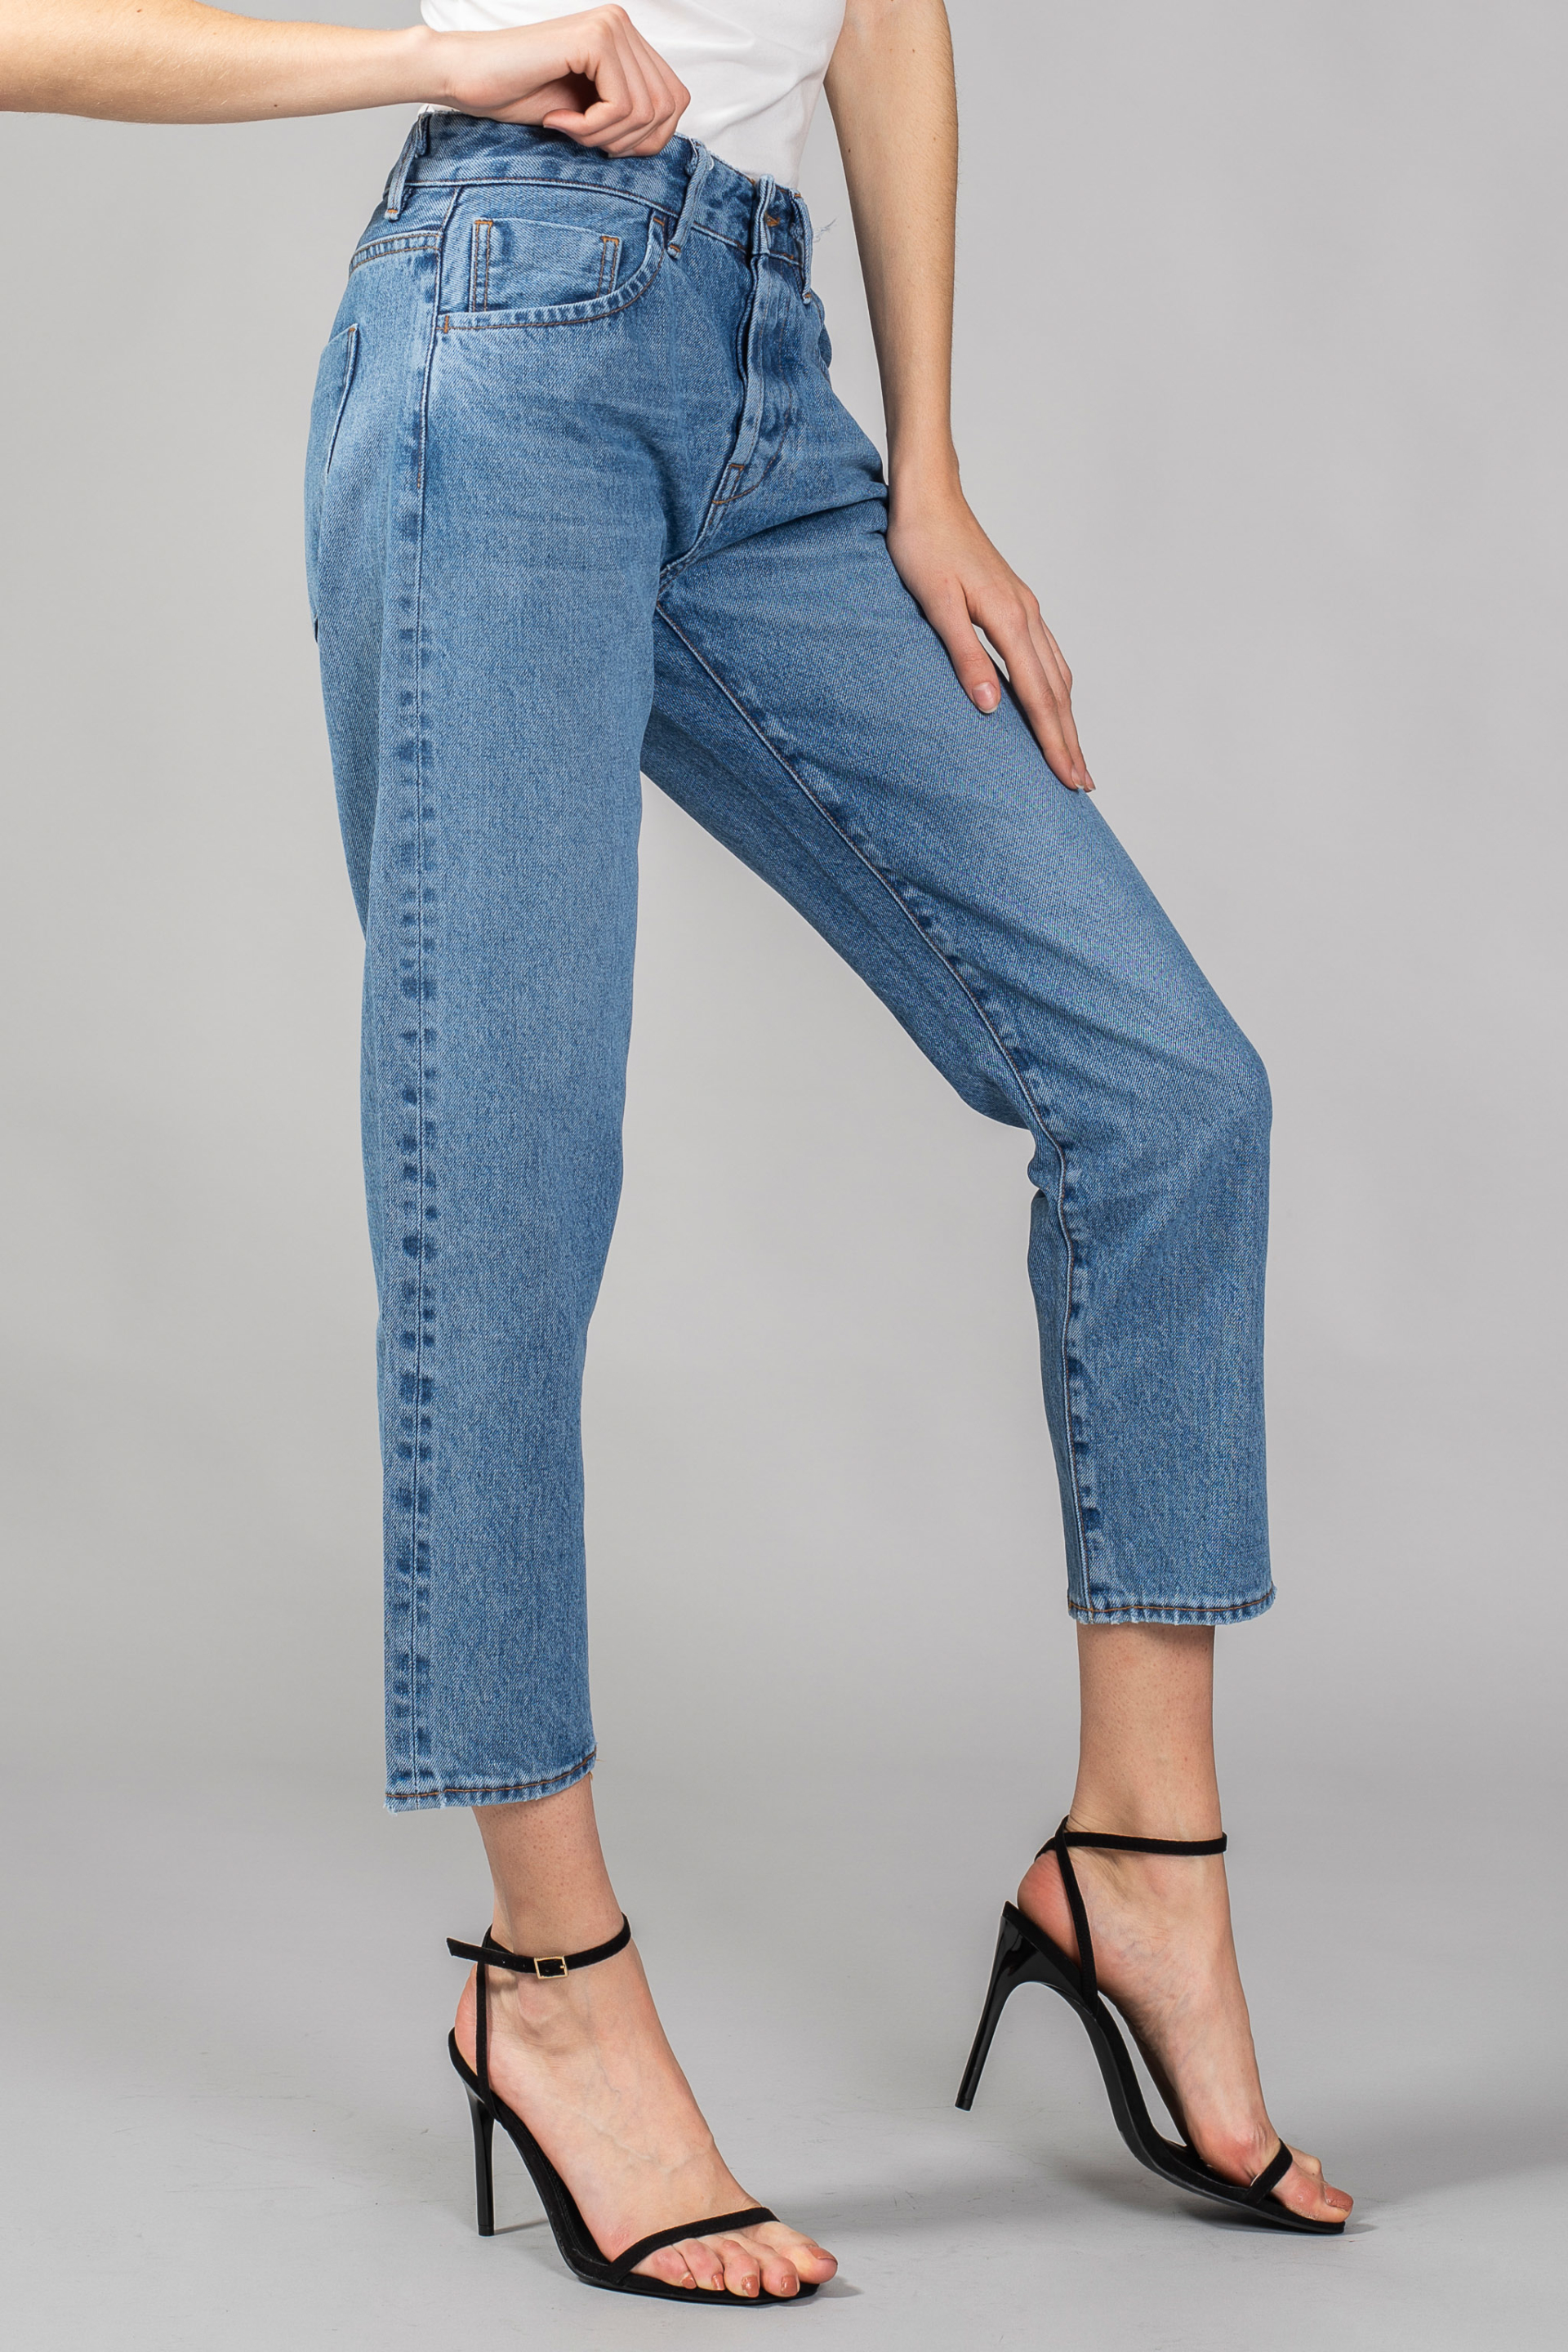 denim jeans rachel k-old recycled relaxed regen collection candiani denim candiani denim store